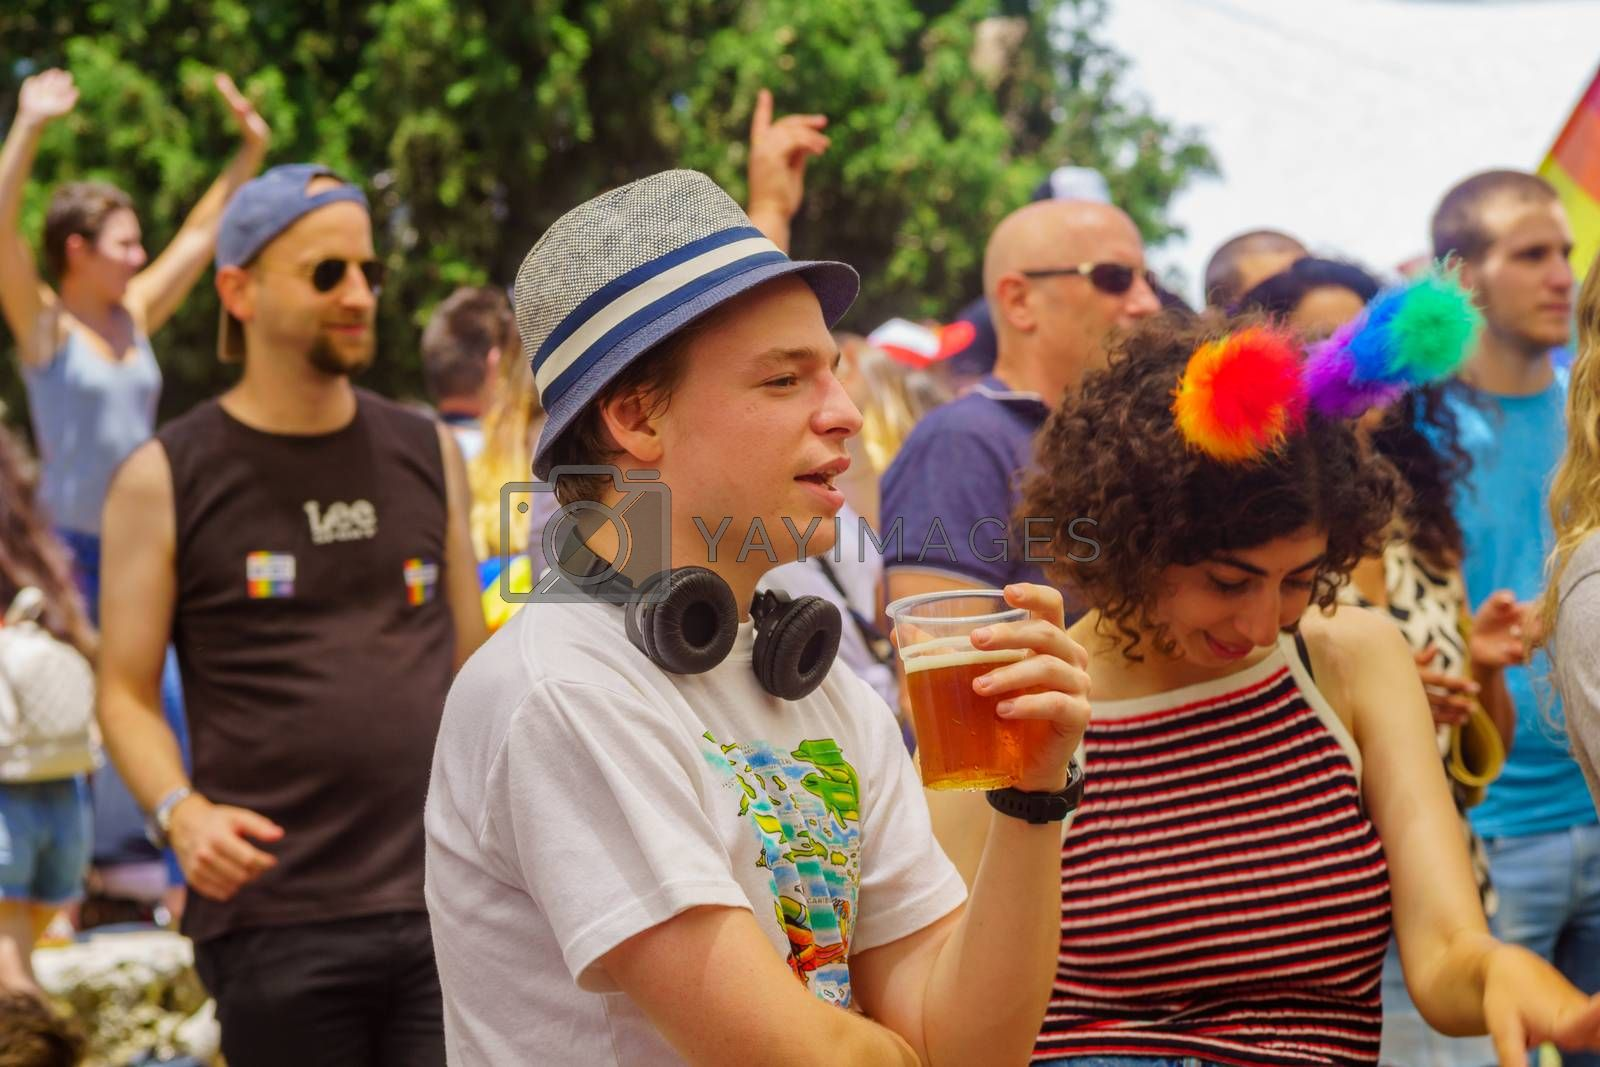 Haifa, Israel - June 28, 2019: Portraits of participants in the annual pride parade of the LGBT community, in the streets of Haifa, Israel